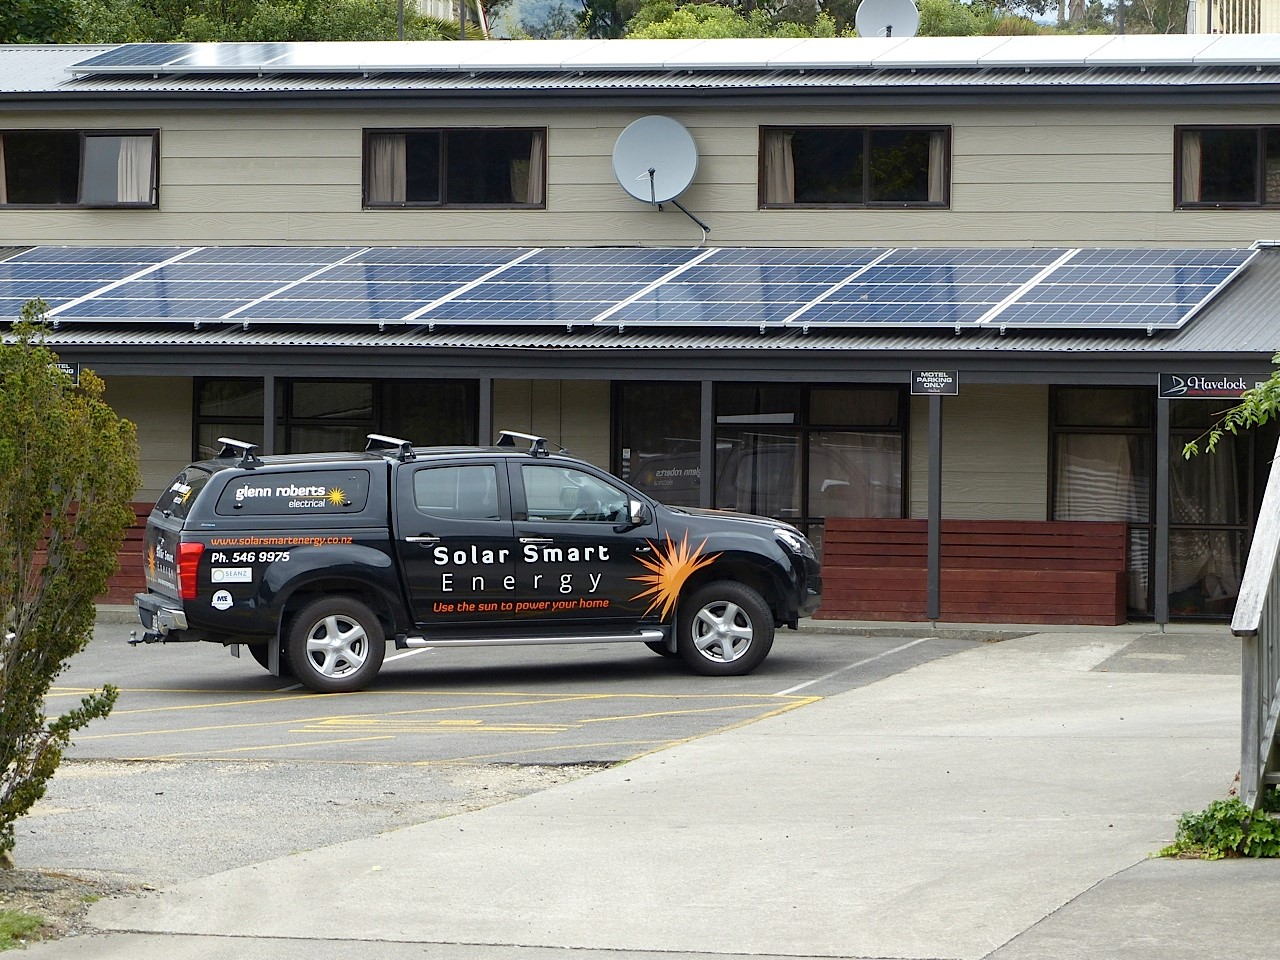 Solar Smart Energy vehicle parked in front of motel with solar panels visible on the roof.